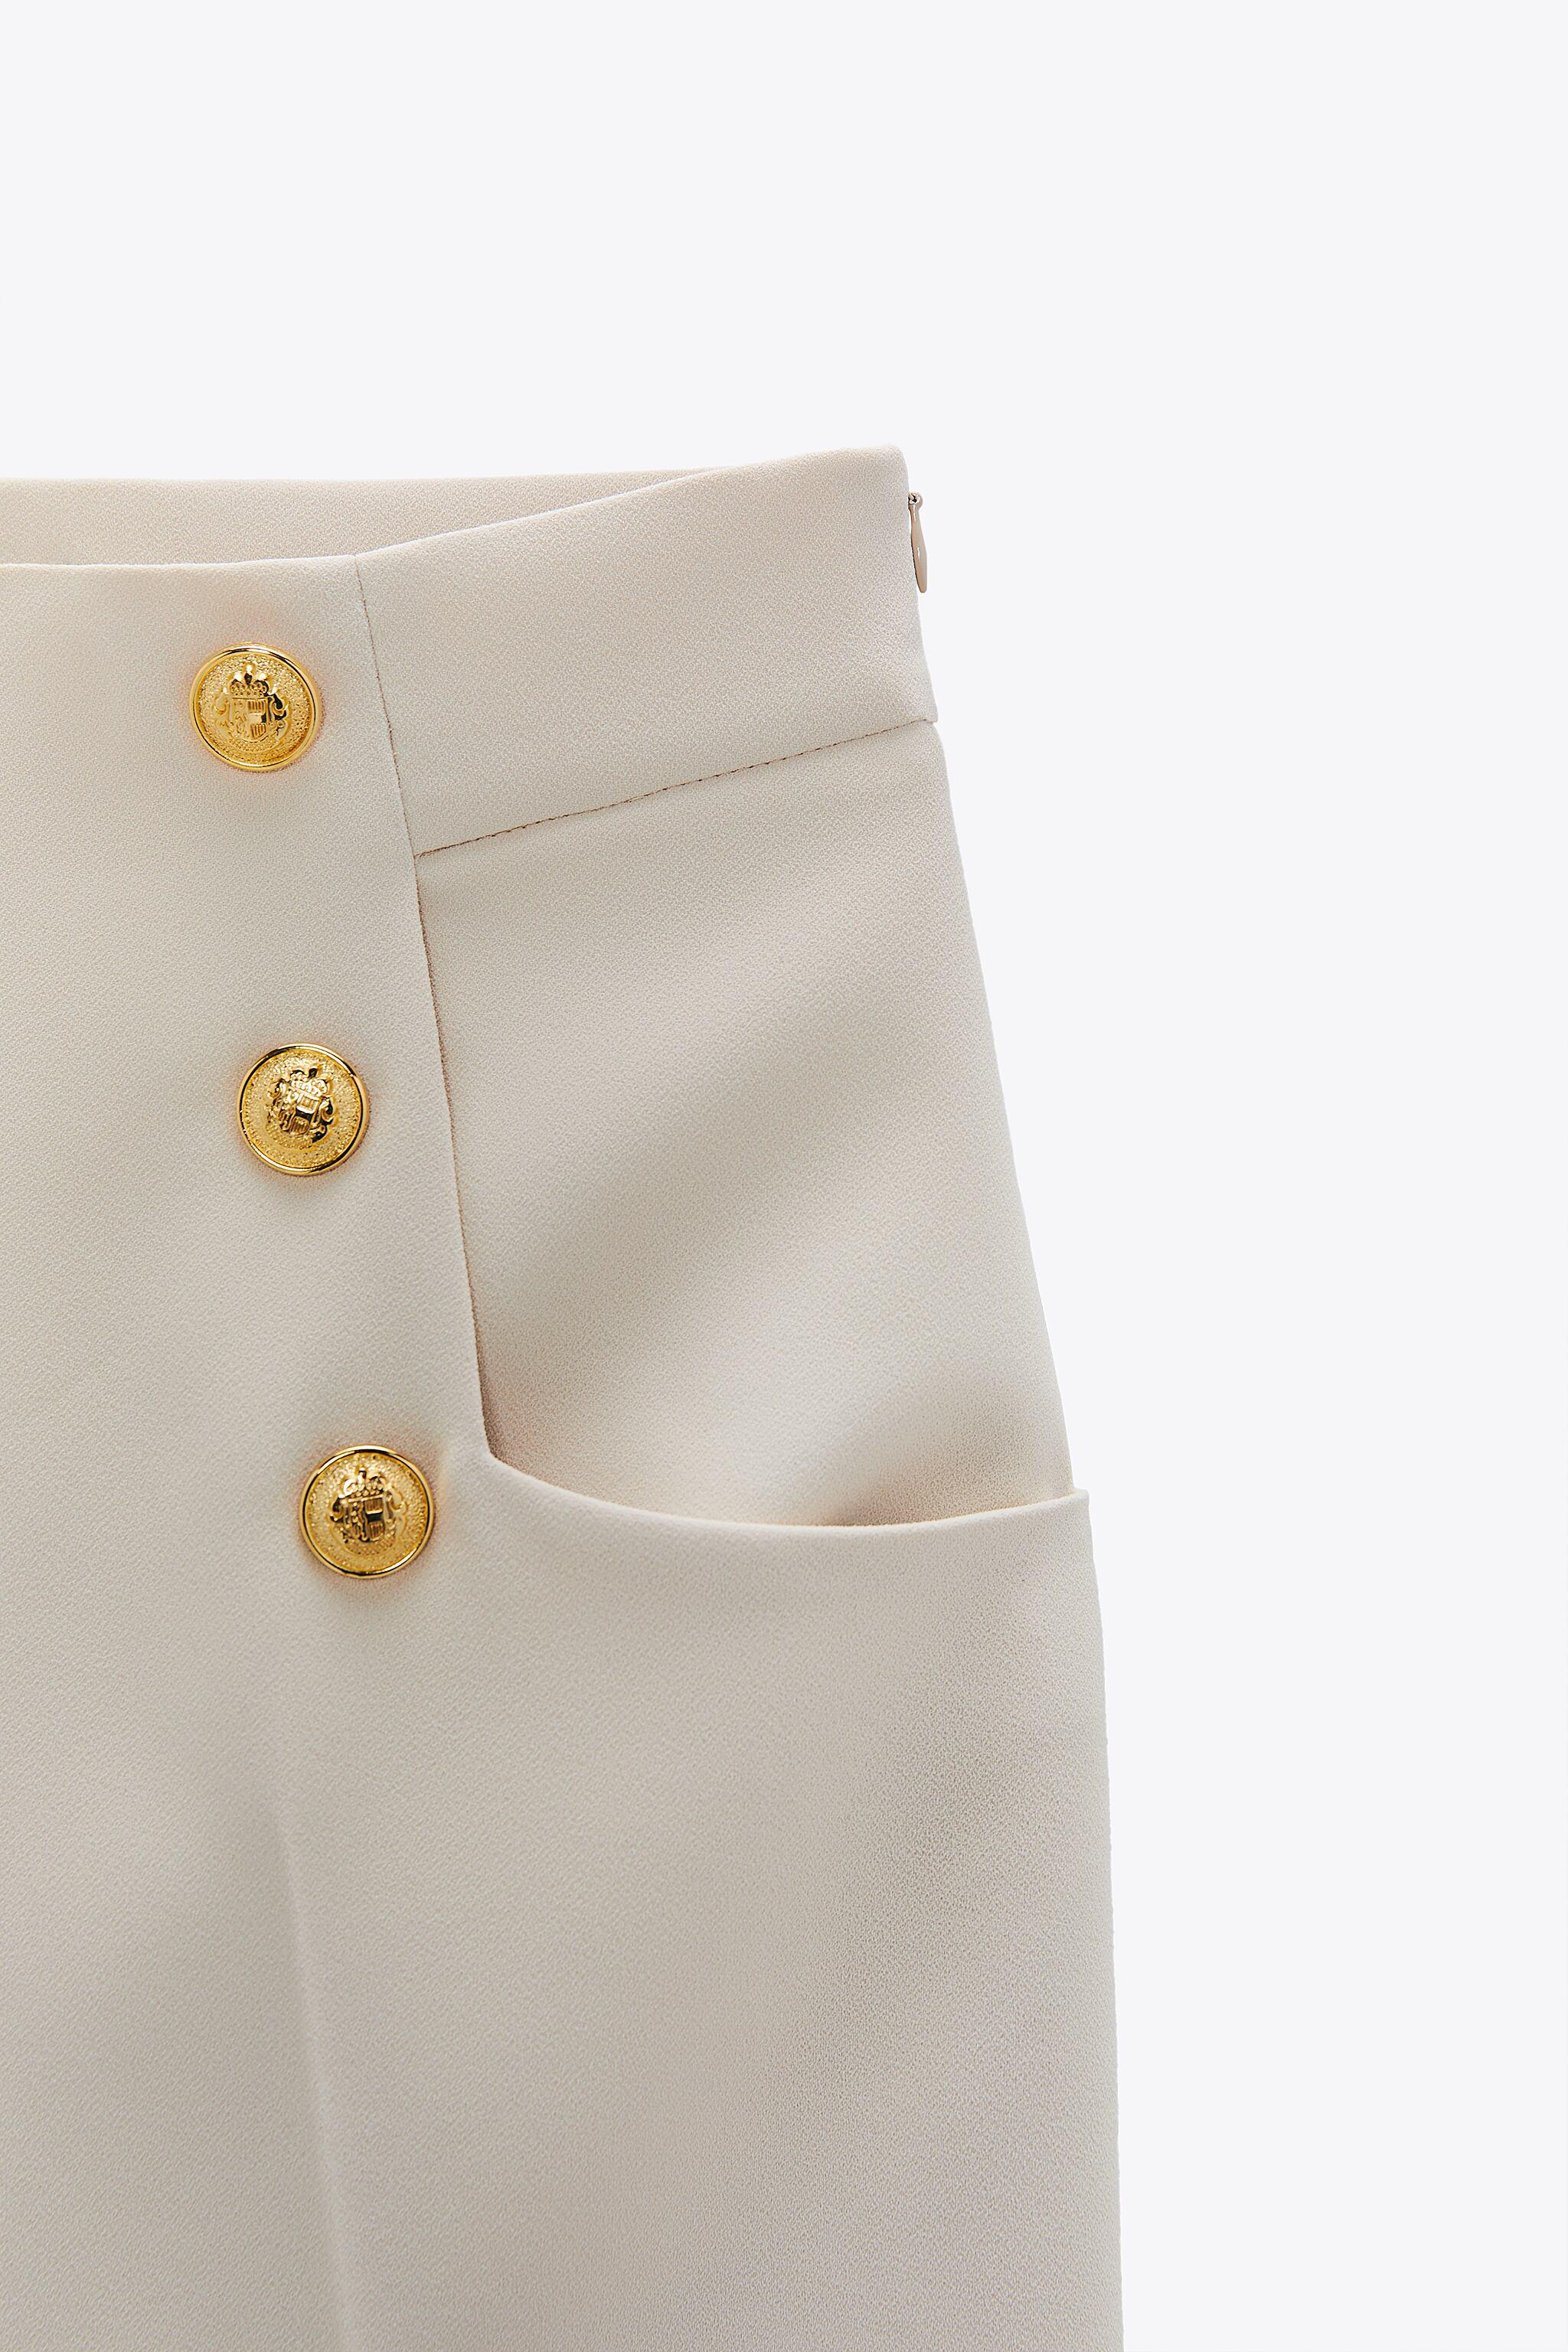 BUTTONED CULOTTES 7